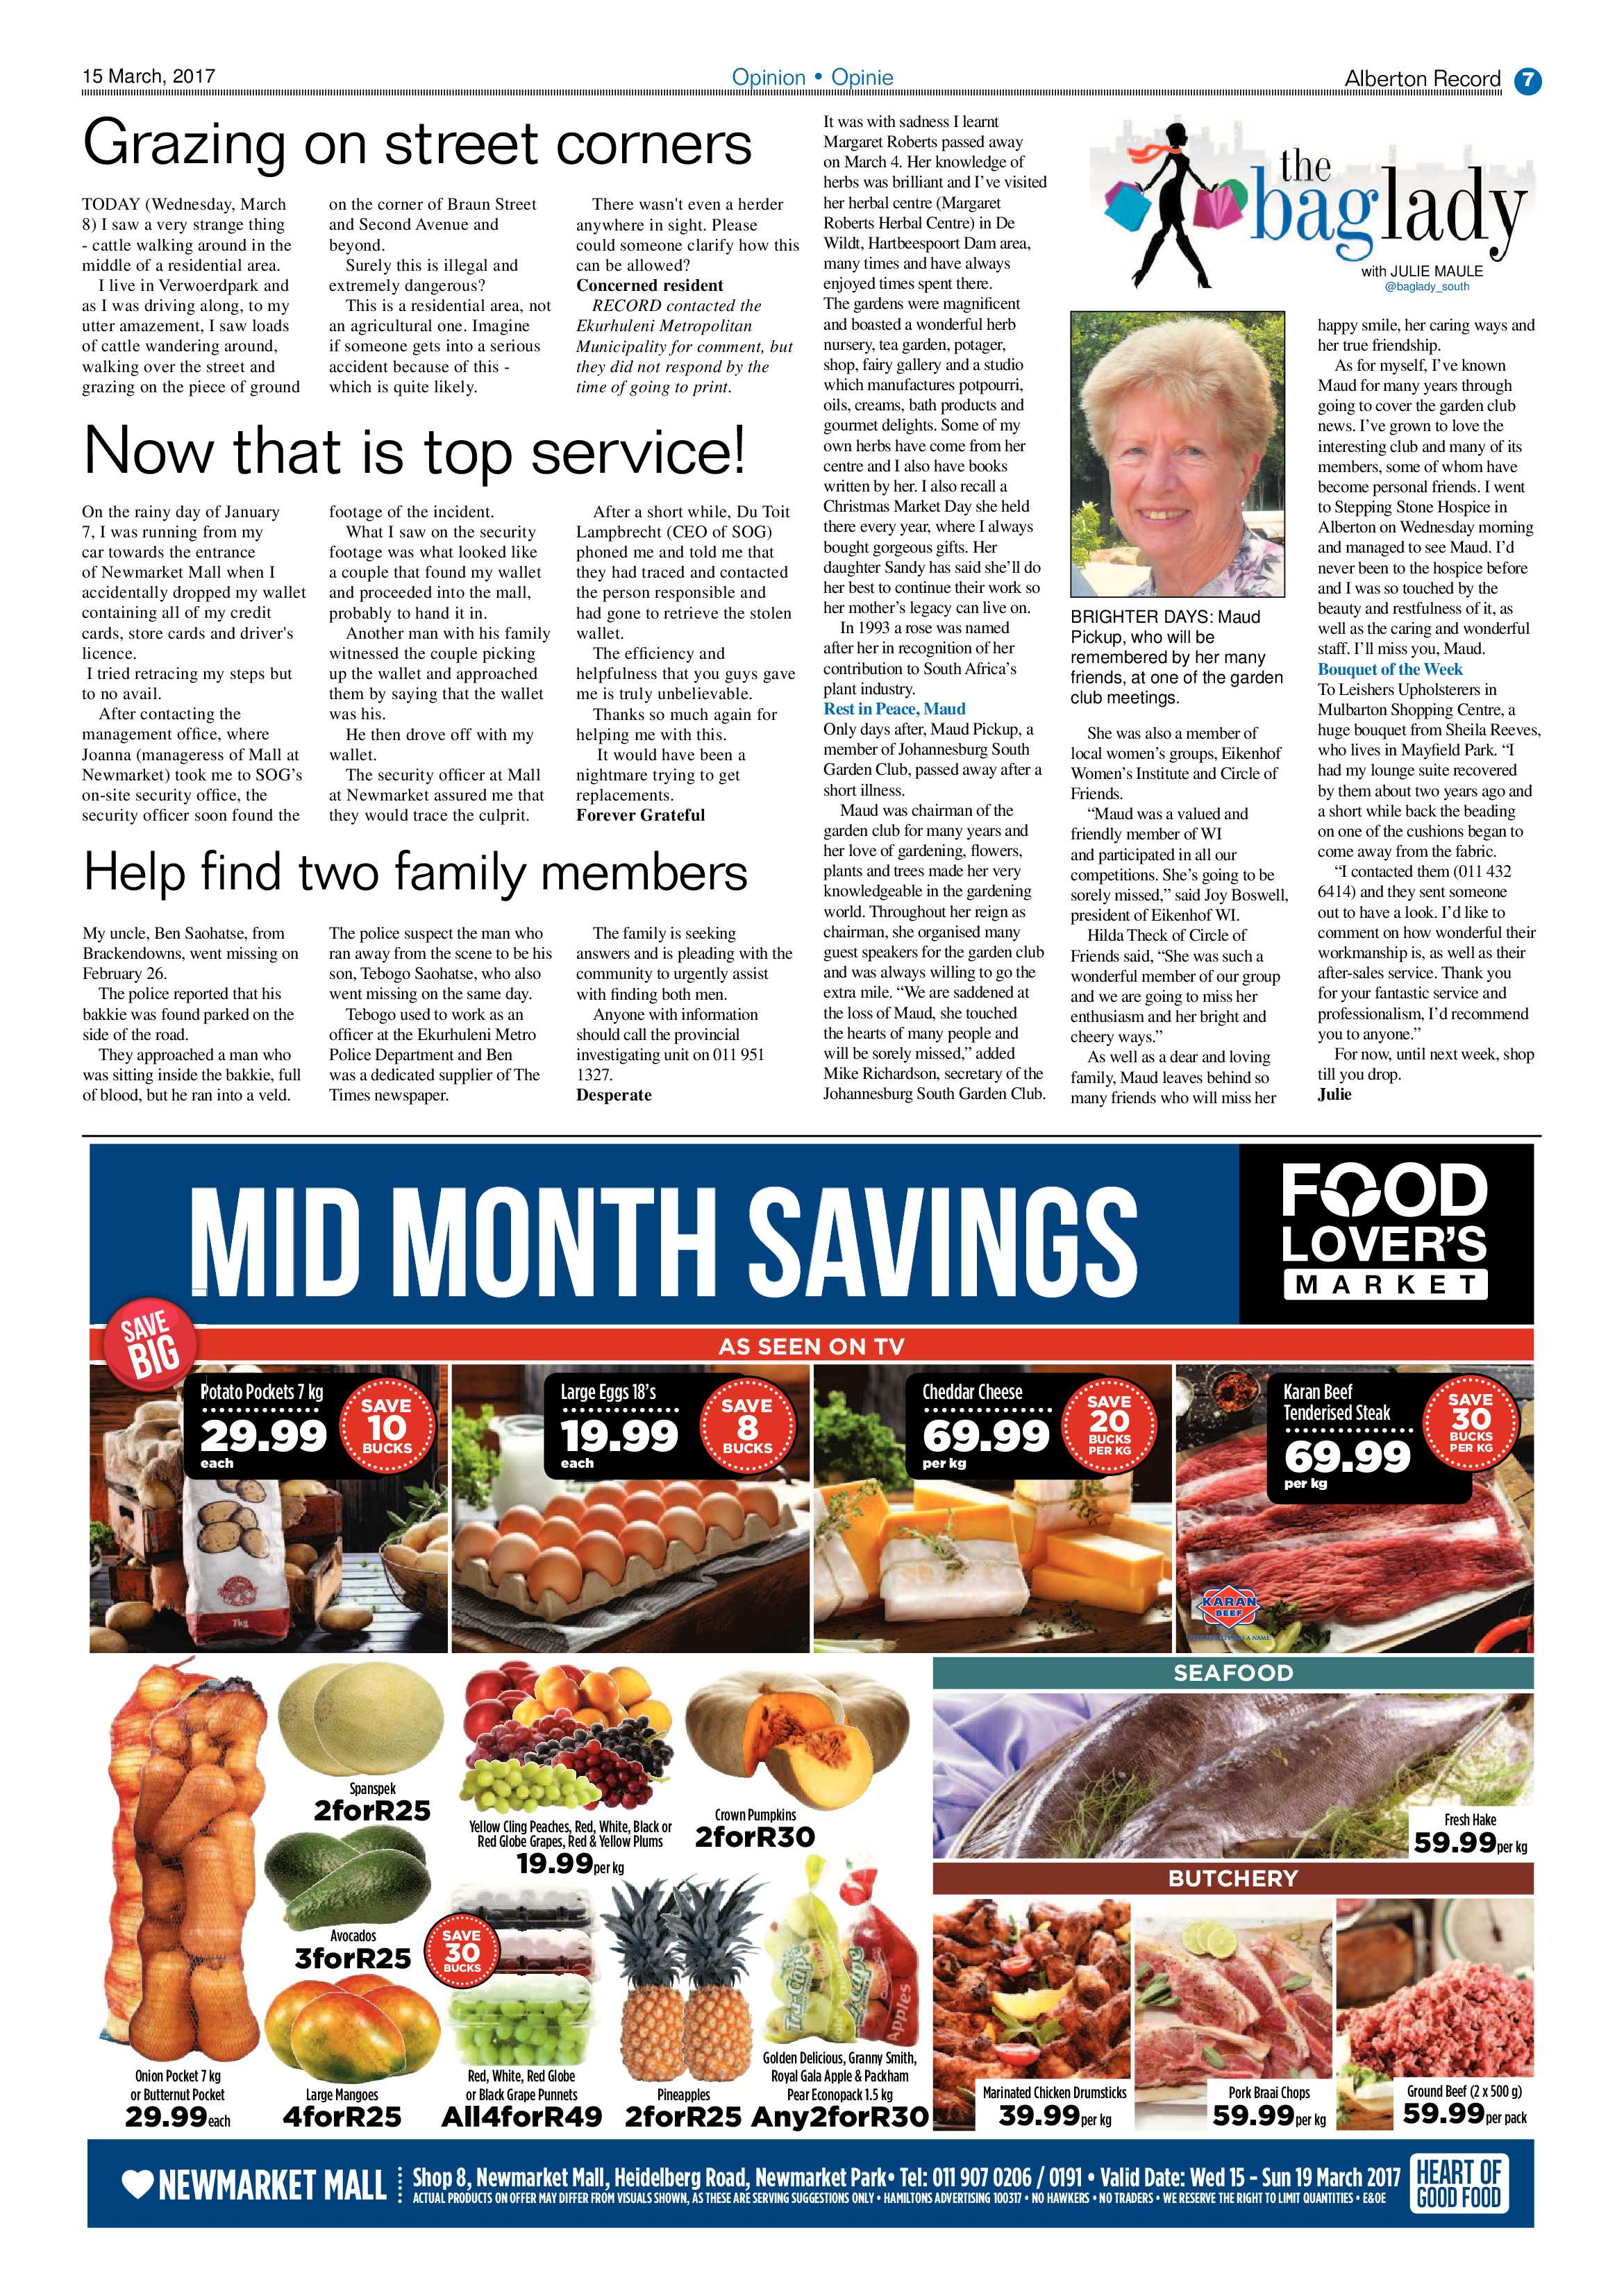 alberton-record-15-march-2017-epapers-page-7